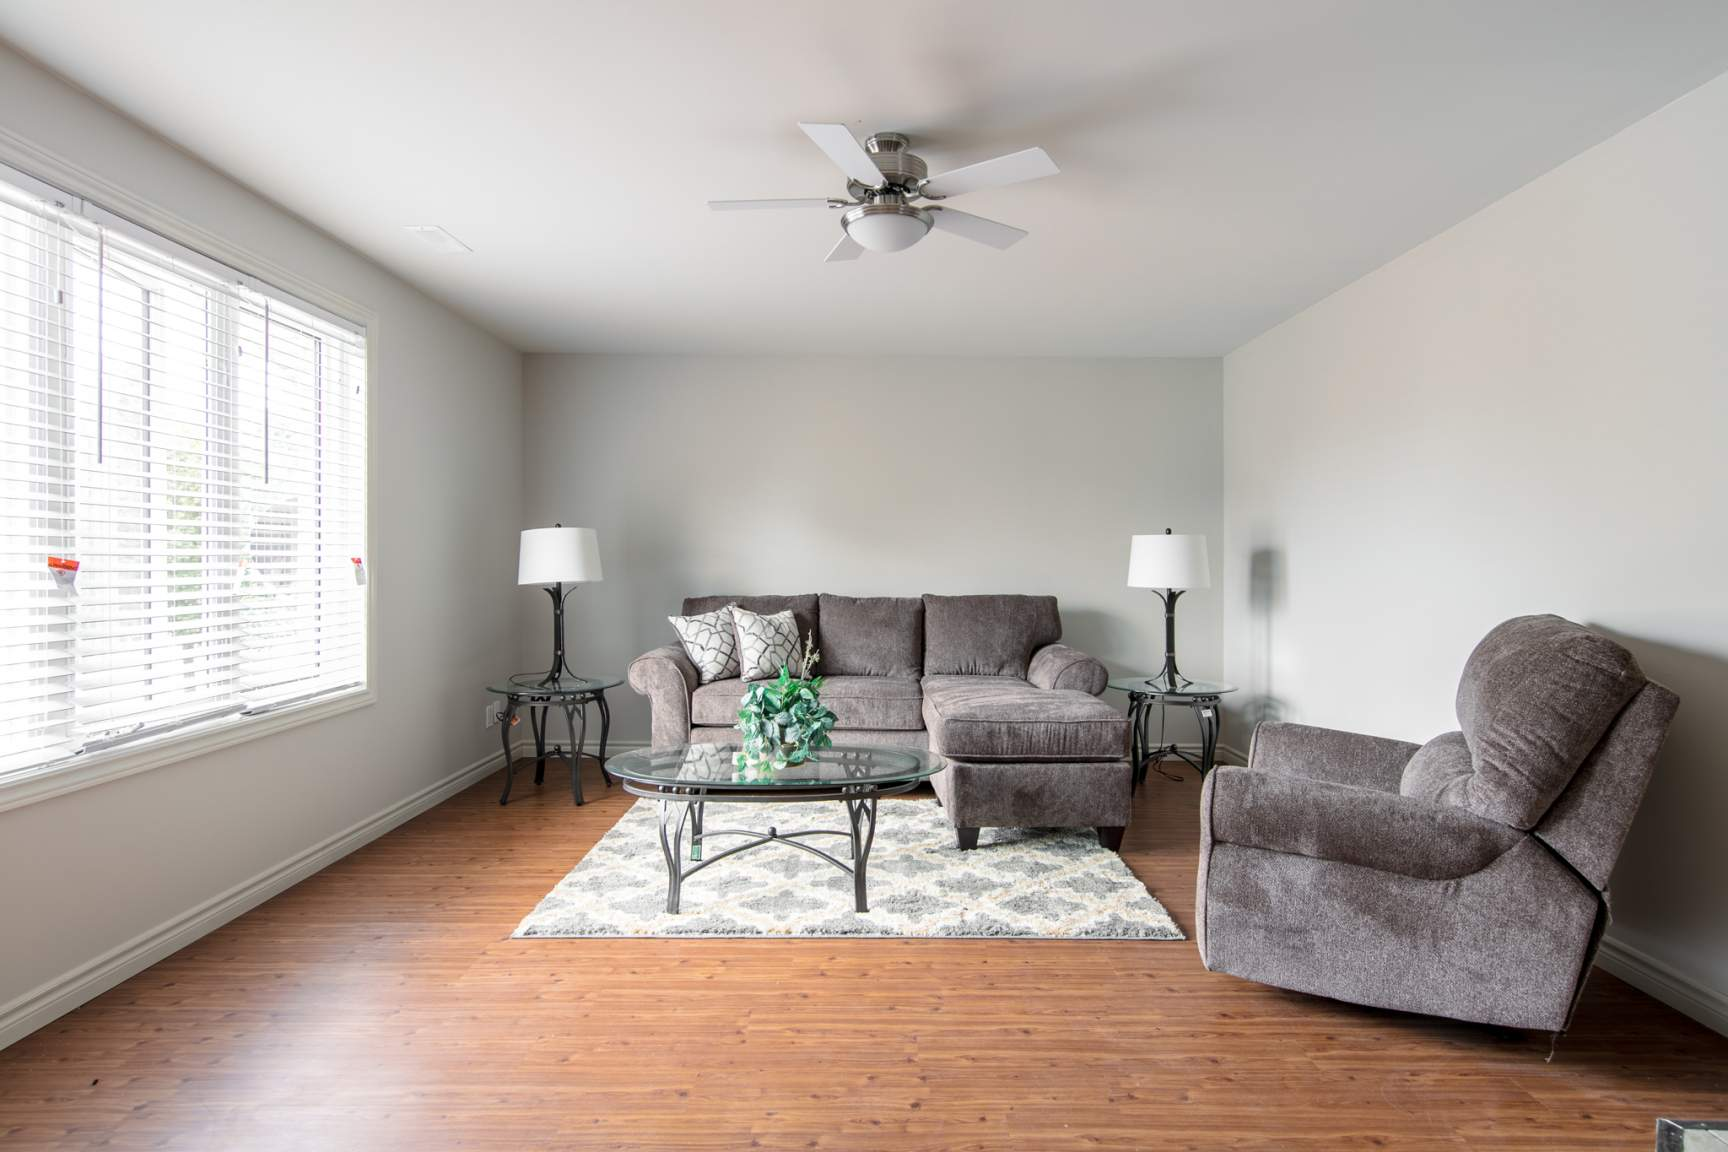 Large living room with new flooring and ceiling fan